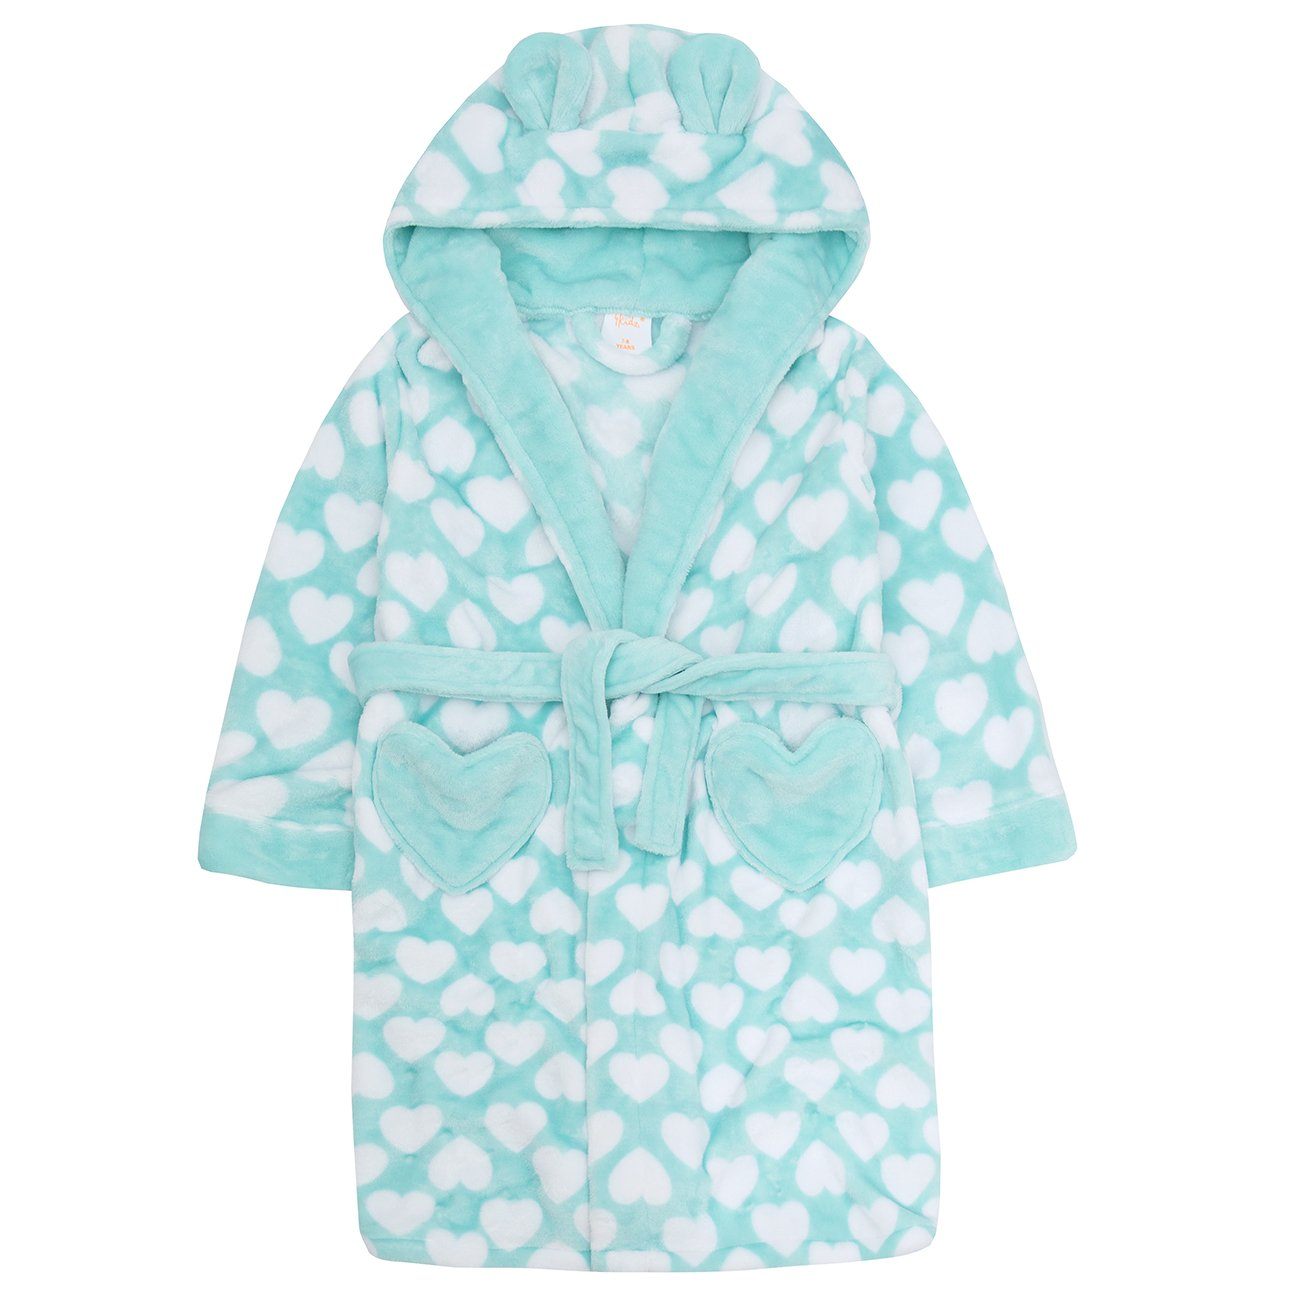 4Kidz Childrens Kids Girls Fleece Dressing Gown - Flannel Fleece Heart Print Hooded Robe